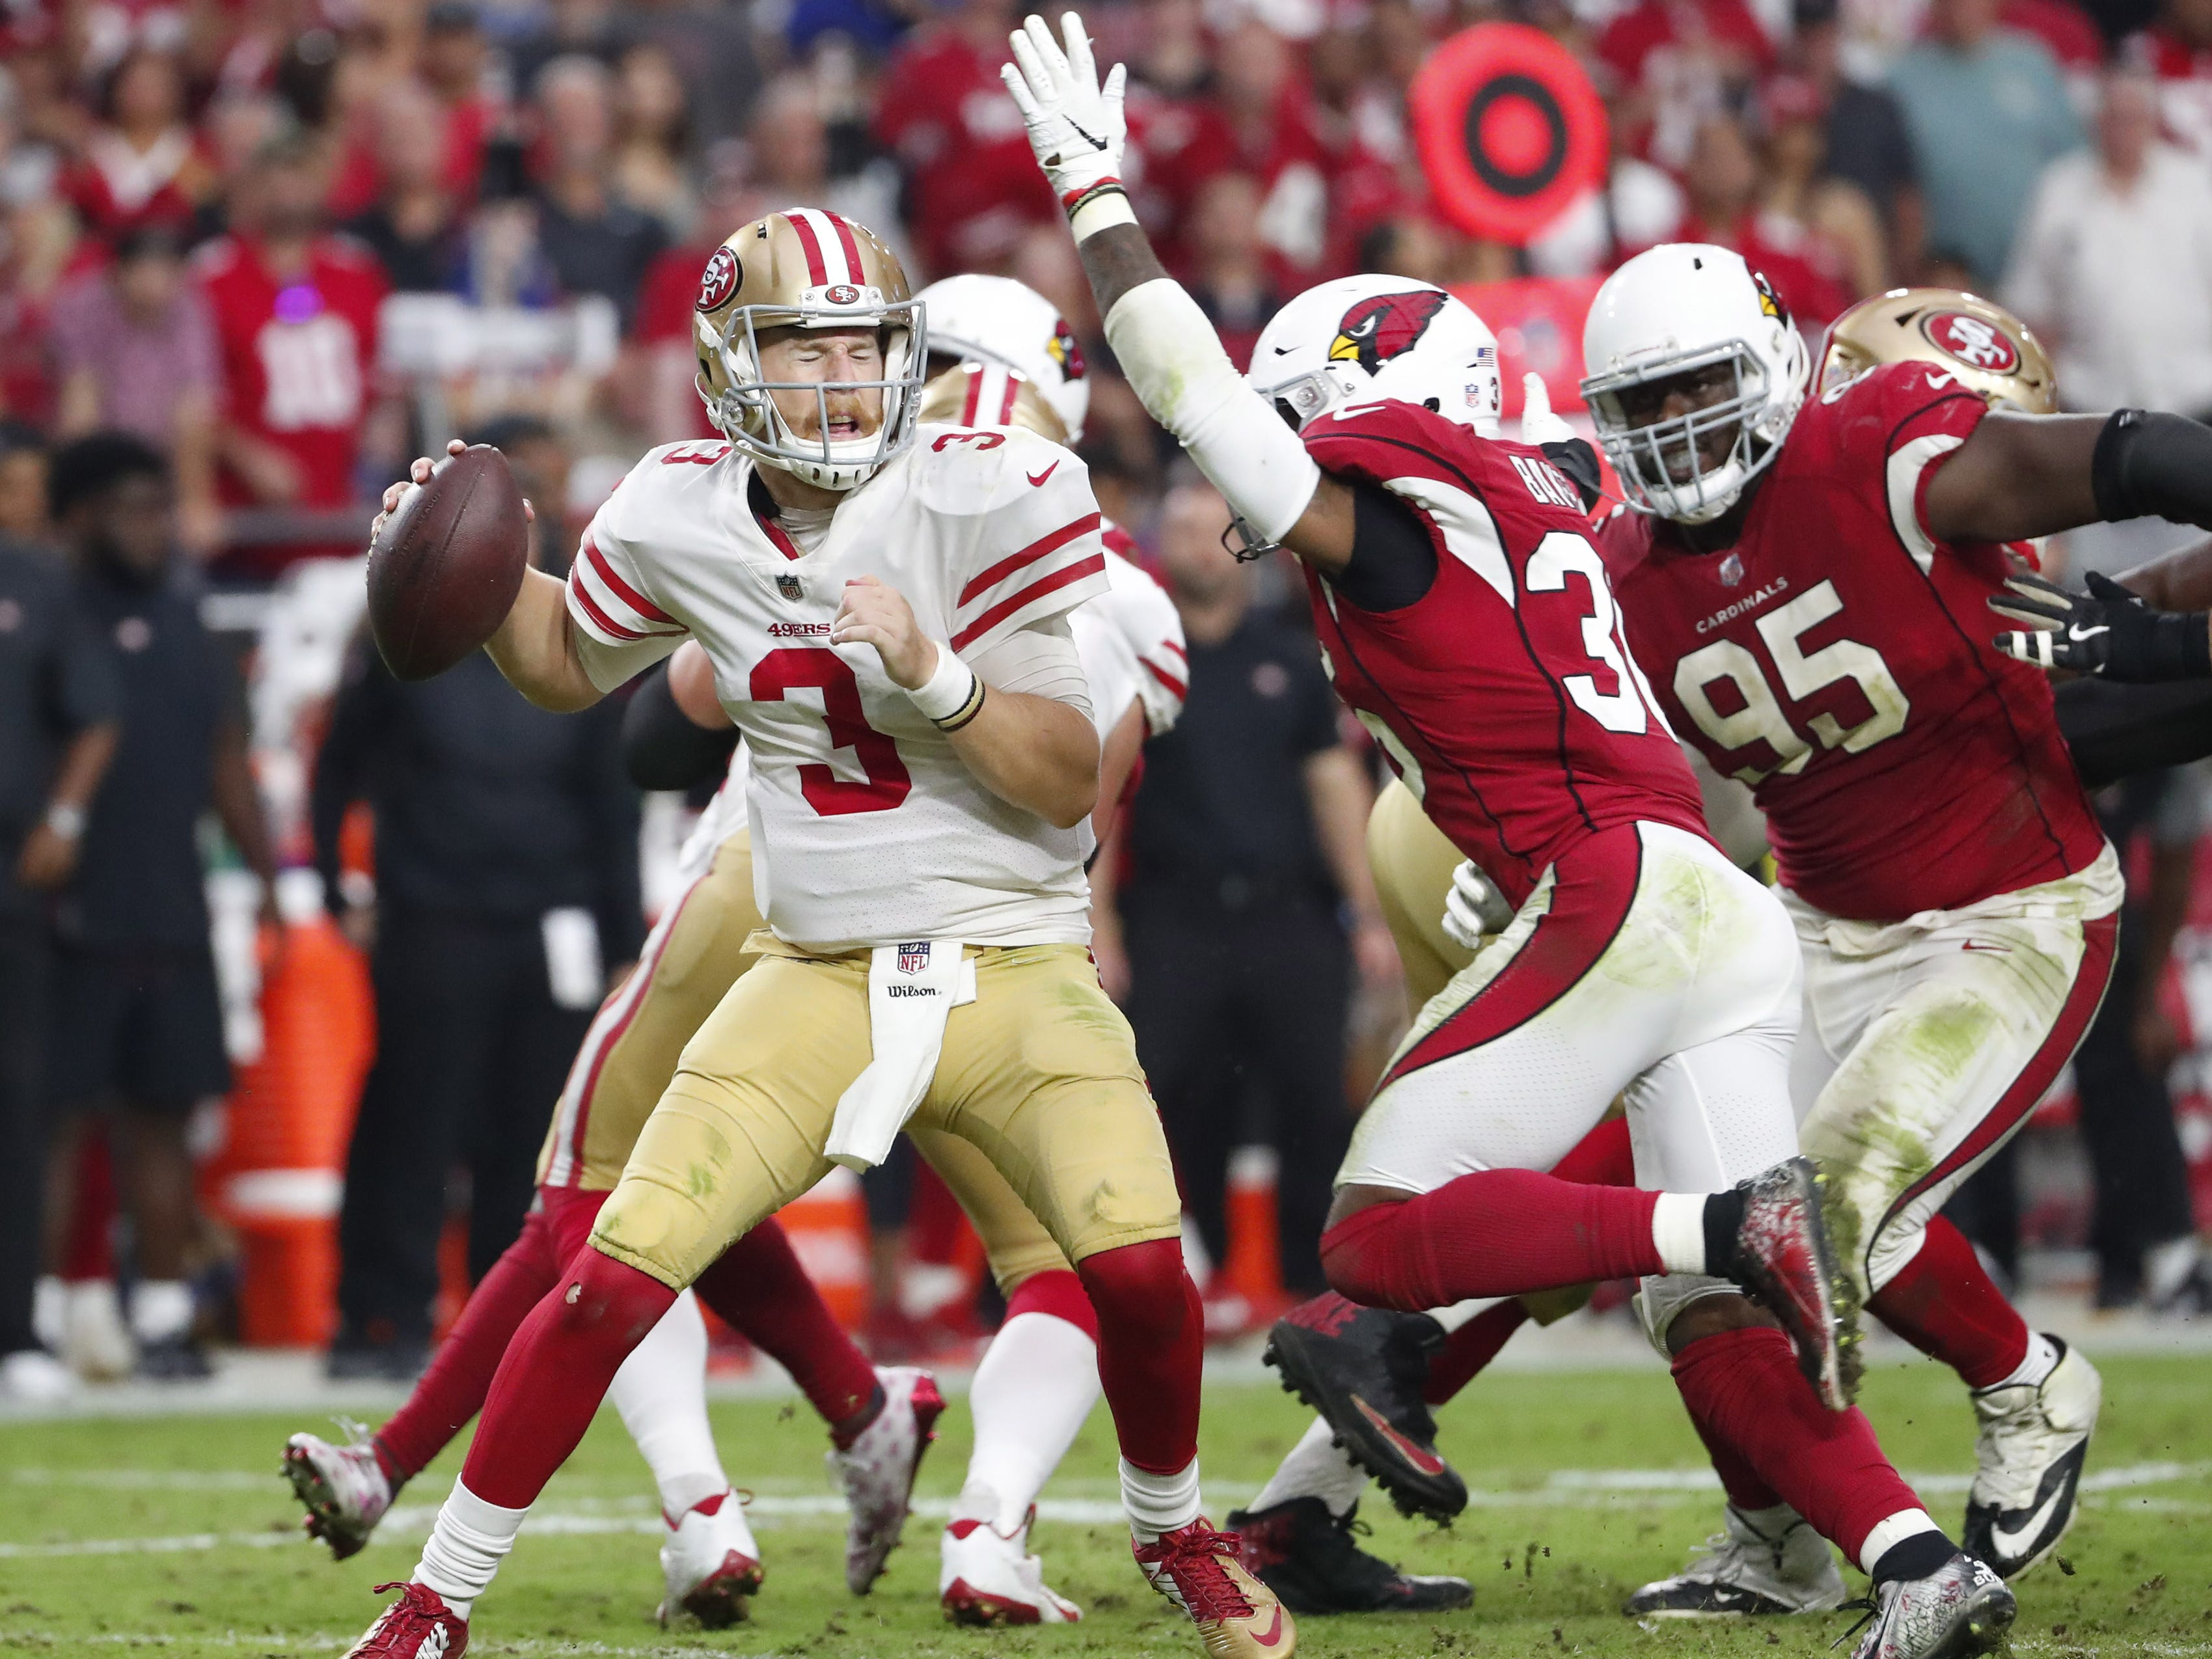 San Francisco 49ers quarterback C.J. Beathard (3) braces for a hit by Arizona Cardinals strong safety Budda Baker (36) in the fourth quarter during NFL action on Oct. 28 at State Farm Stadium.